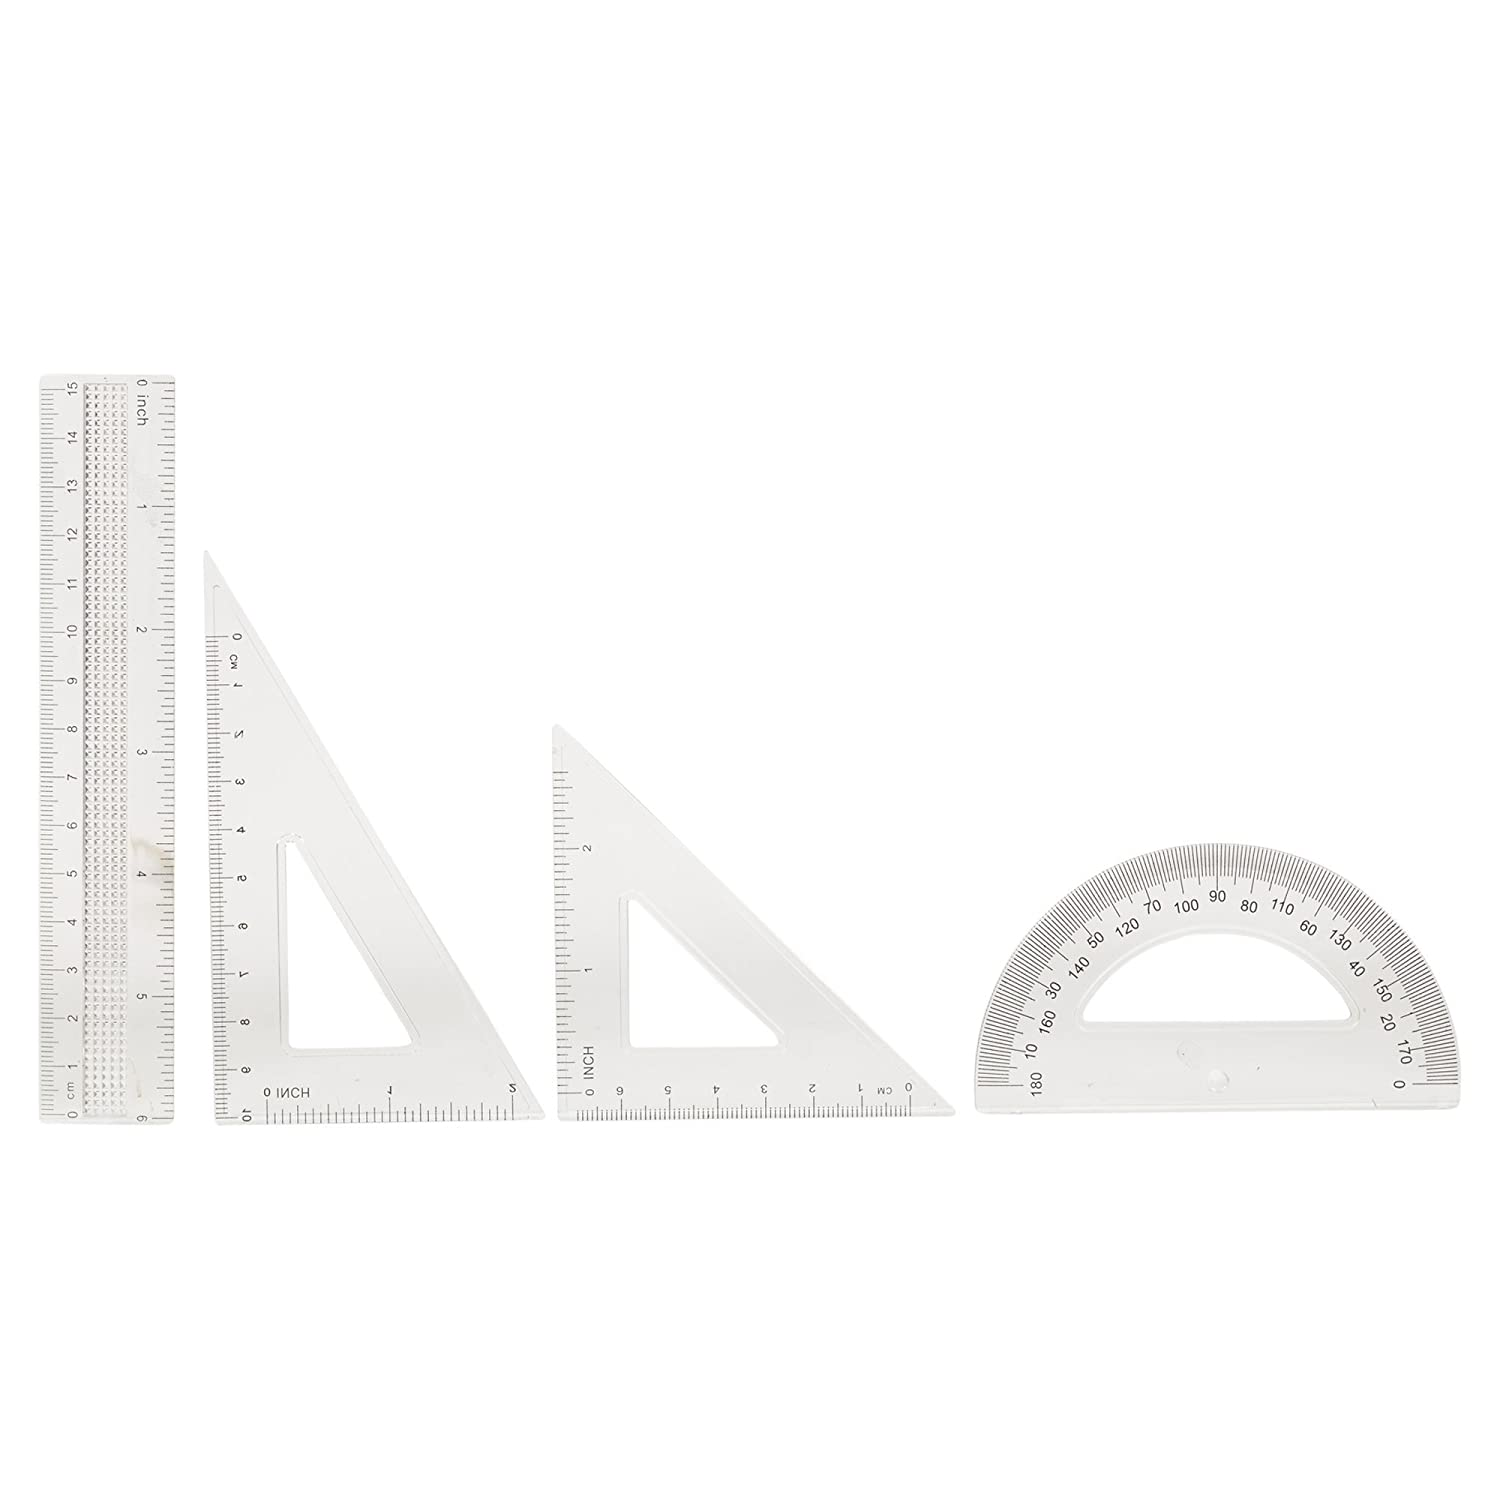 8 Pc Compass Precision Drawing Set Ruler Protractor Boxed Case School Geometry